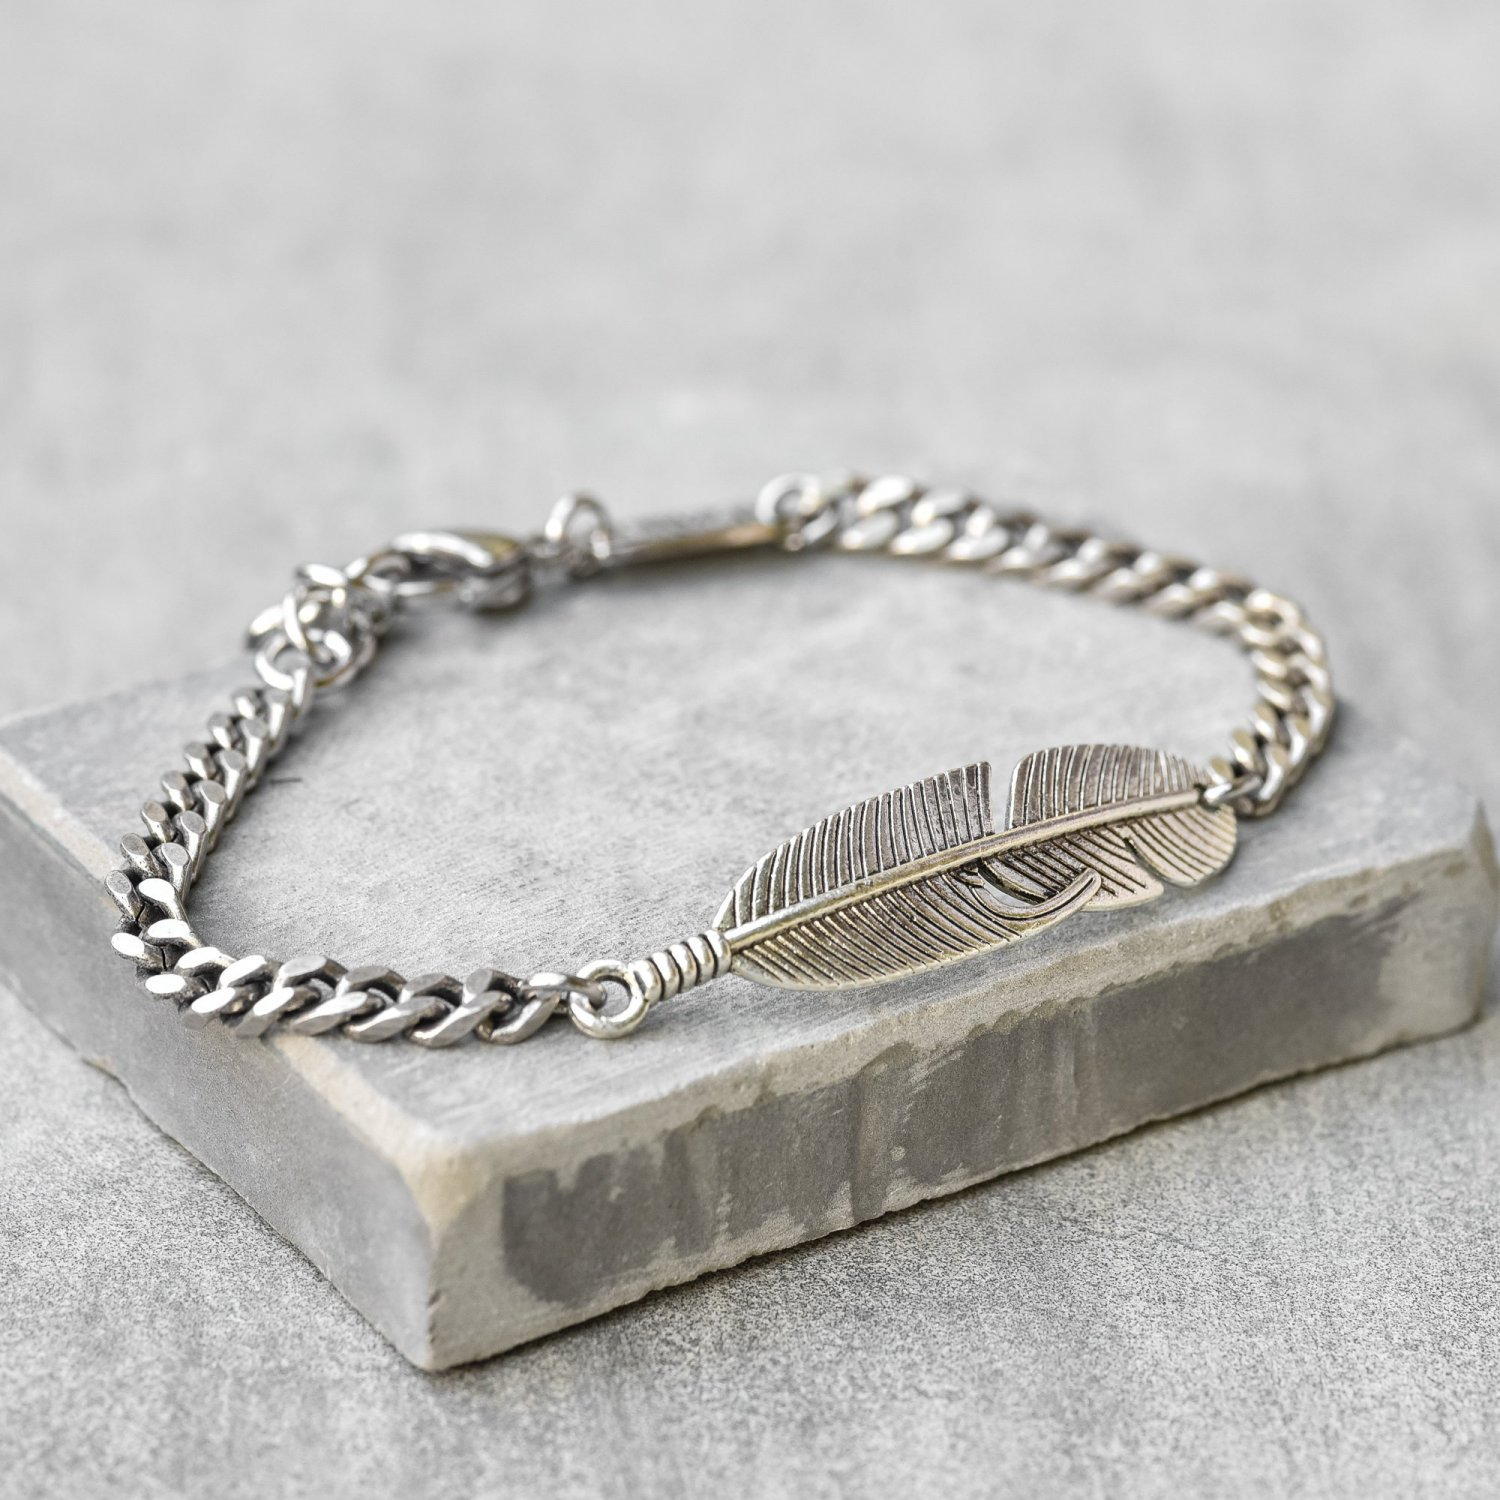 Men's Feather Bracelets - Men's Chain Bracelet - Men's Silver Bracelets - Men's Jewelry